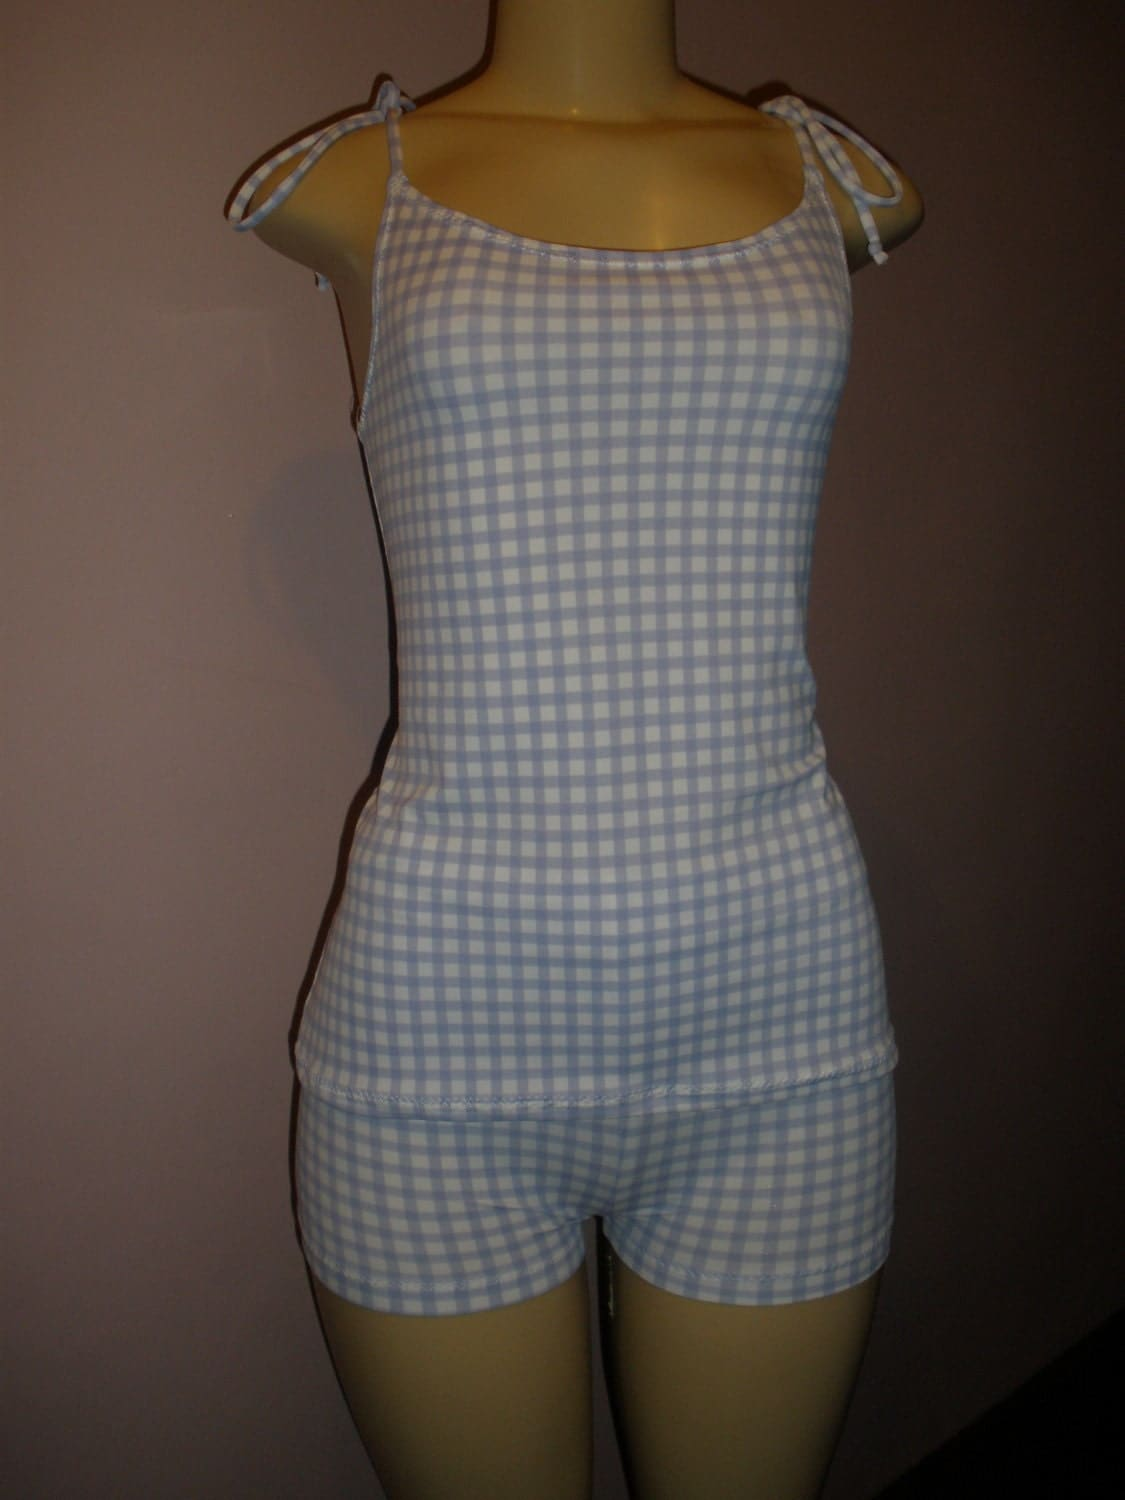 2 Piece Adorable Light Blue and White Plaid Print Swim Suit Top and Shorts Set, Women Swim Suit, Teenage Girl Swim Suit, Ladies Swim Suit